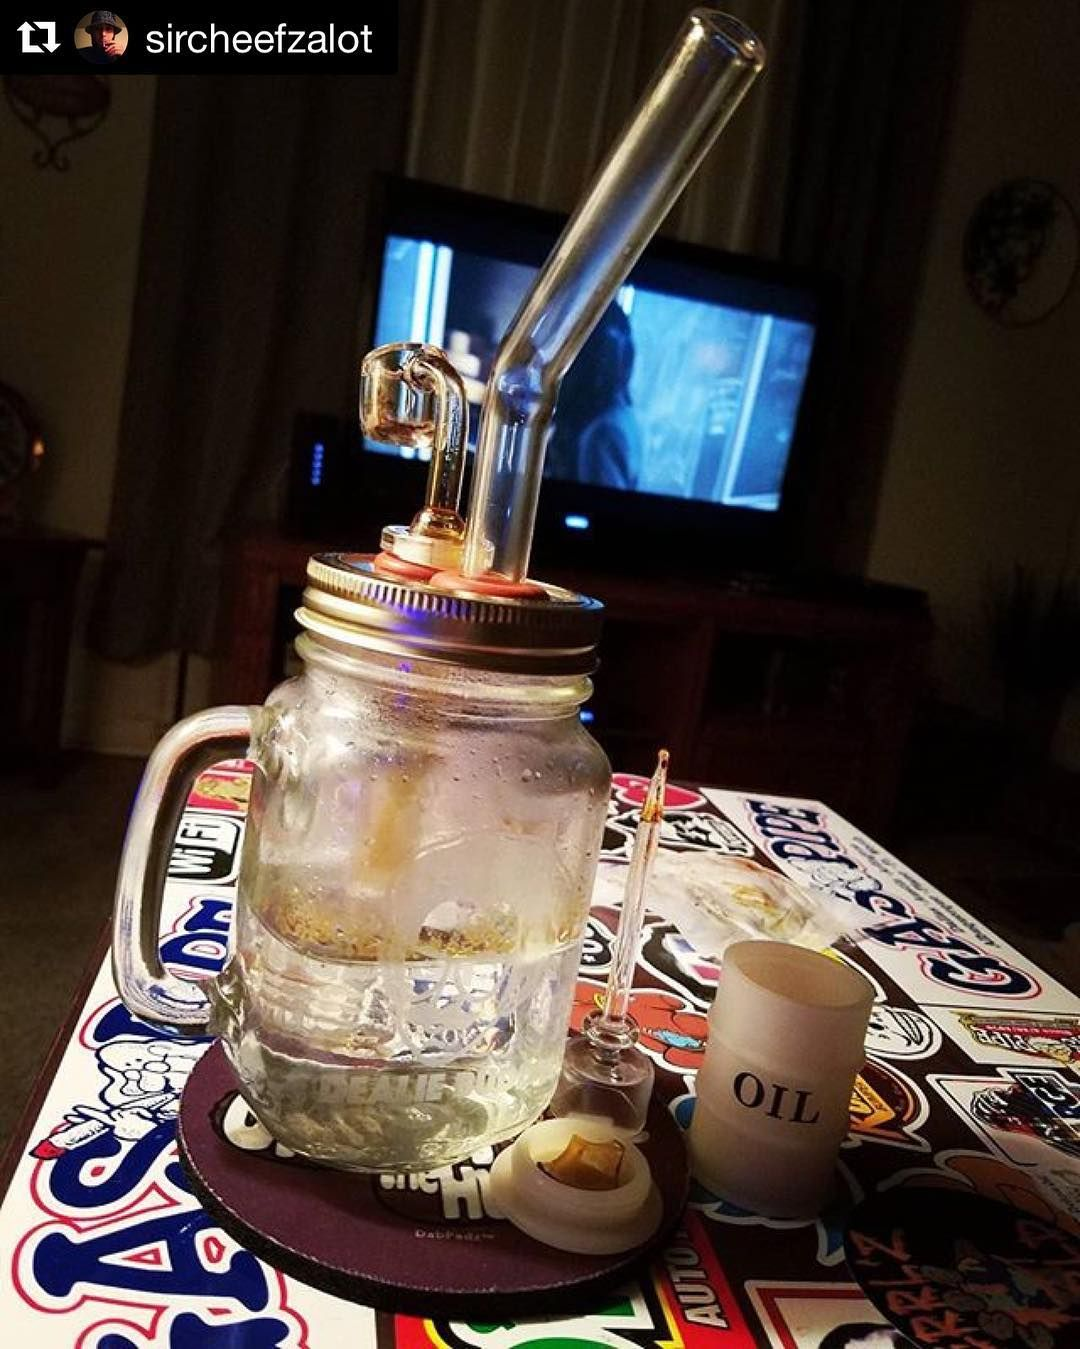 #dealiebuddy #oil and a movie. Doesn't get much better than this. #dealieatingthenation @sircheefzalot #repost.  Dealiebuddy  #Sircheefzalot #Dealiebuddy #smokeweedeveryday #glassofig #dablife #dabbersdaily #dabstagram #weshouldsmoke #fueledbythc #fueledbydabs #710society #dabbinoutdallas #dallasdabfam #bhombingamerica #dailydabbers #staylifted #iwillmarrymary #staymedicated #dodealie #masonmughighlife